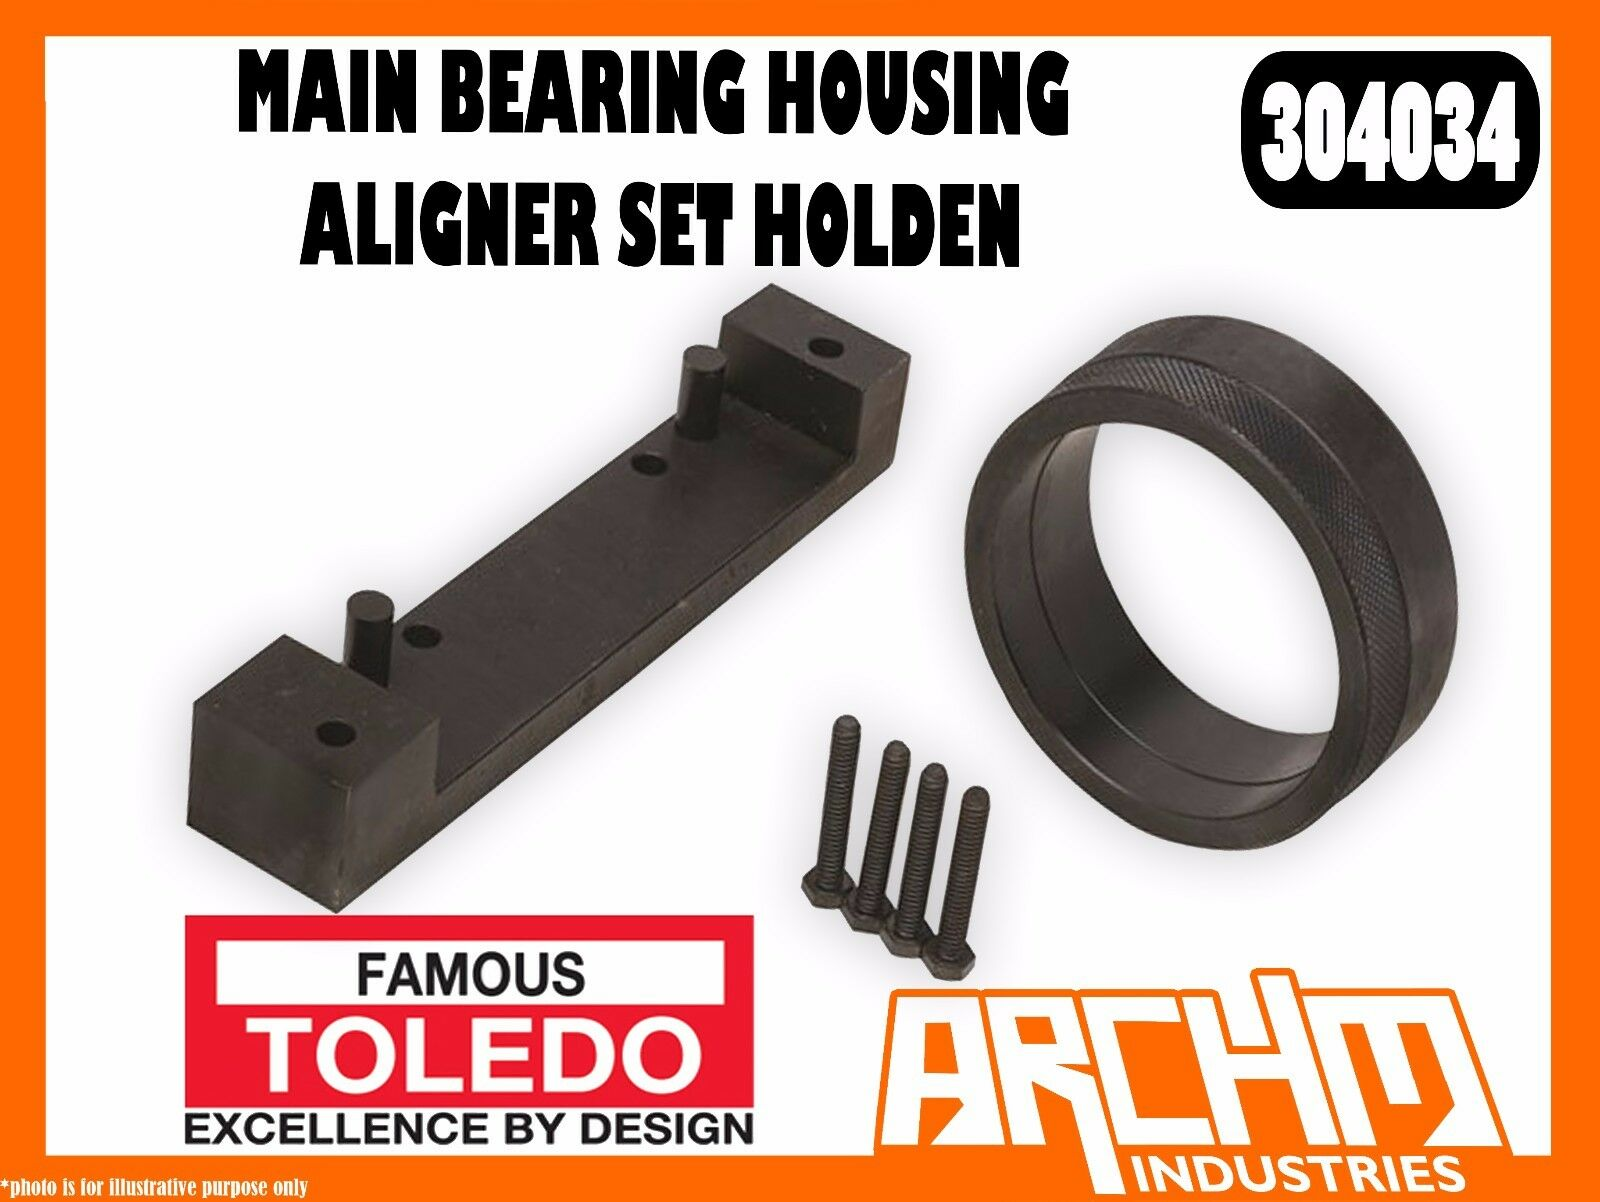 TOLEDO 304034 - MAIN BEARING HOUSING ALIGNER SET HOLDEN - BEARING OIL SEALS